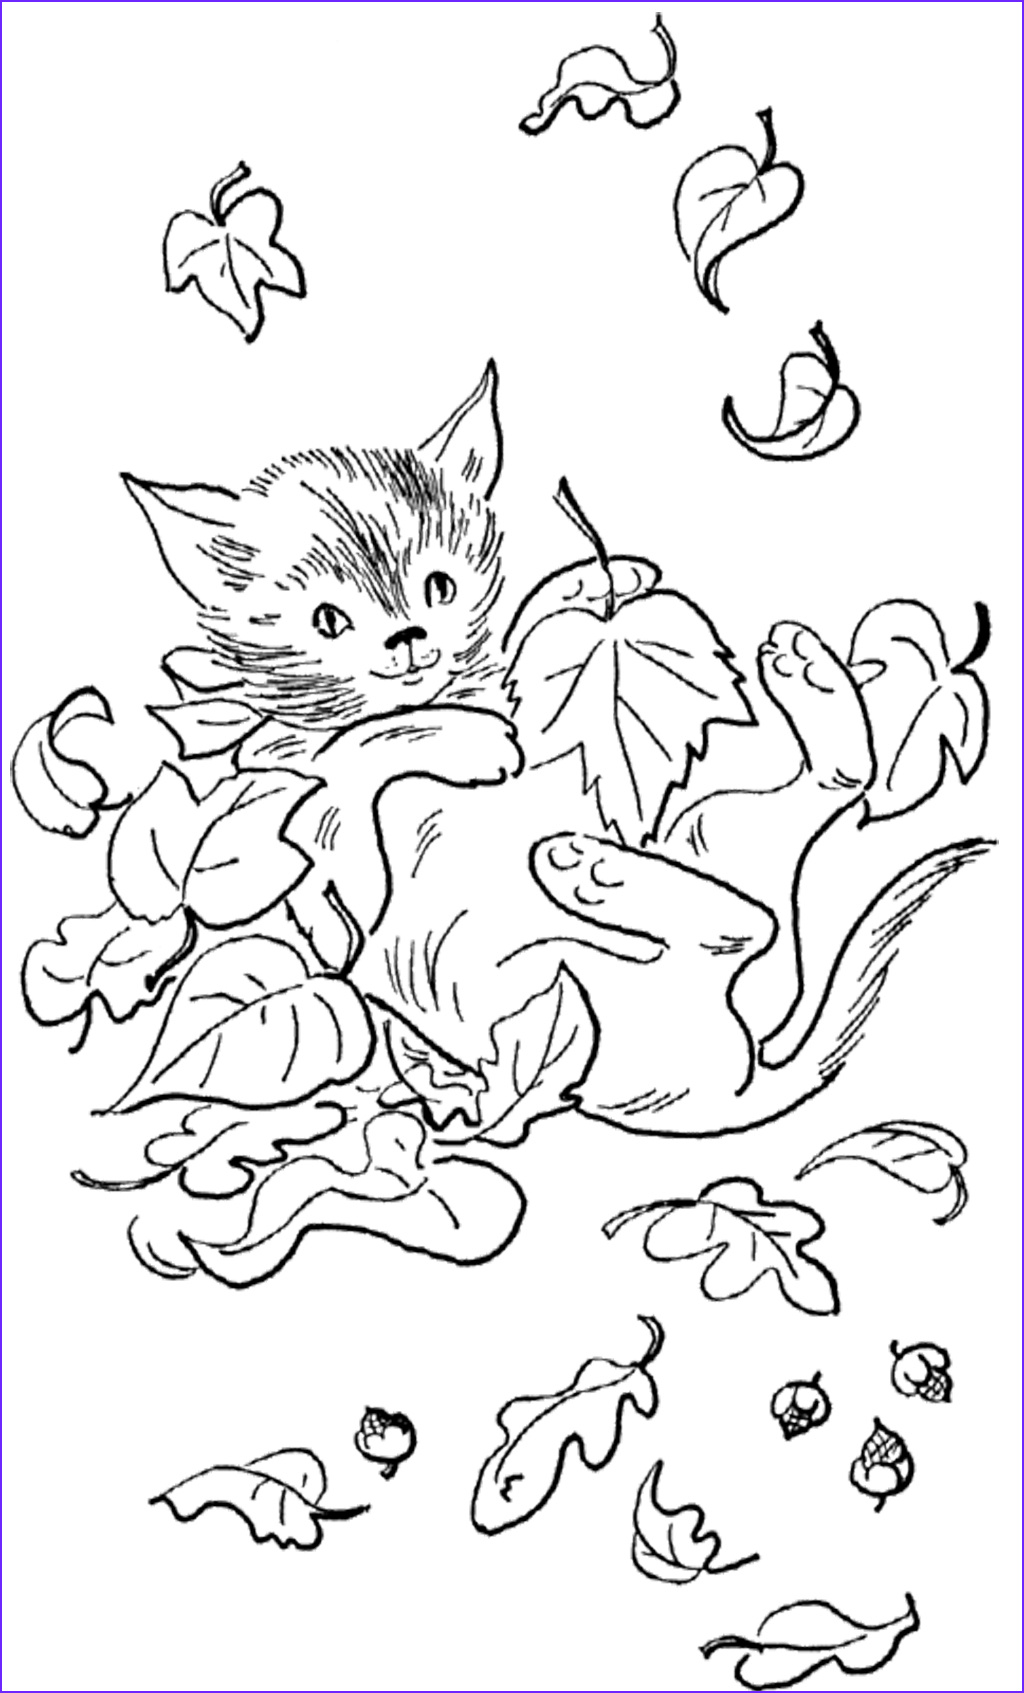 Autumn Coloring Sheets Awesome Gallery Fall Season 21 Nature – Printable Coloring Pages